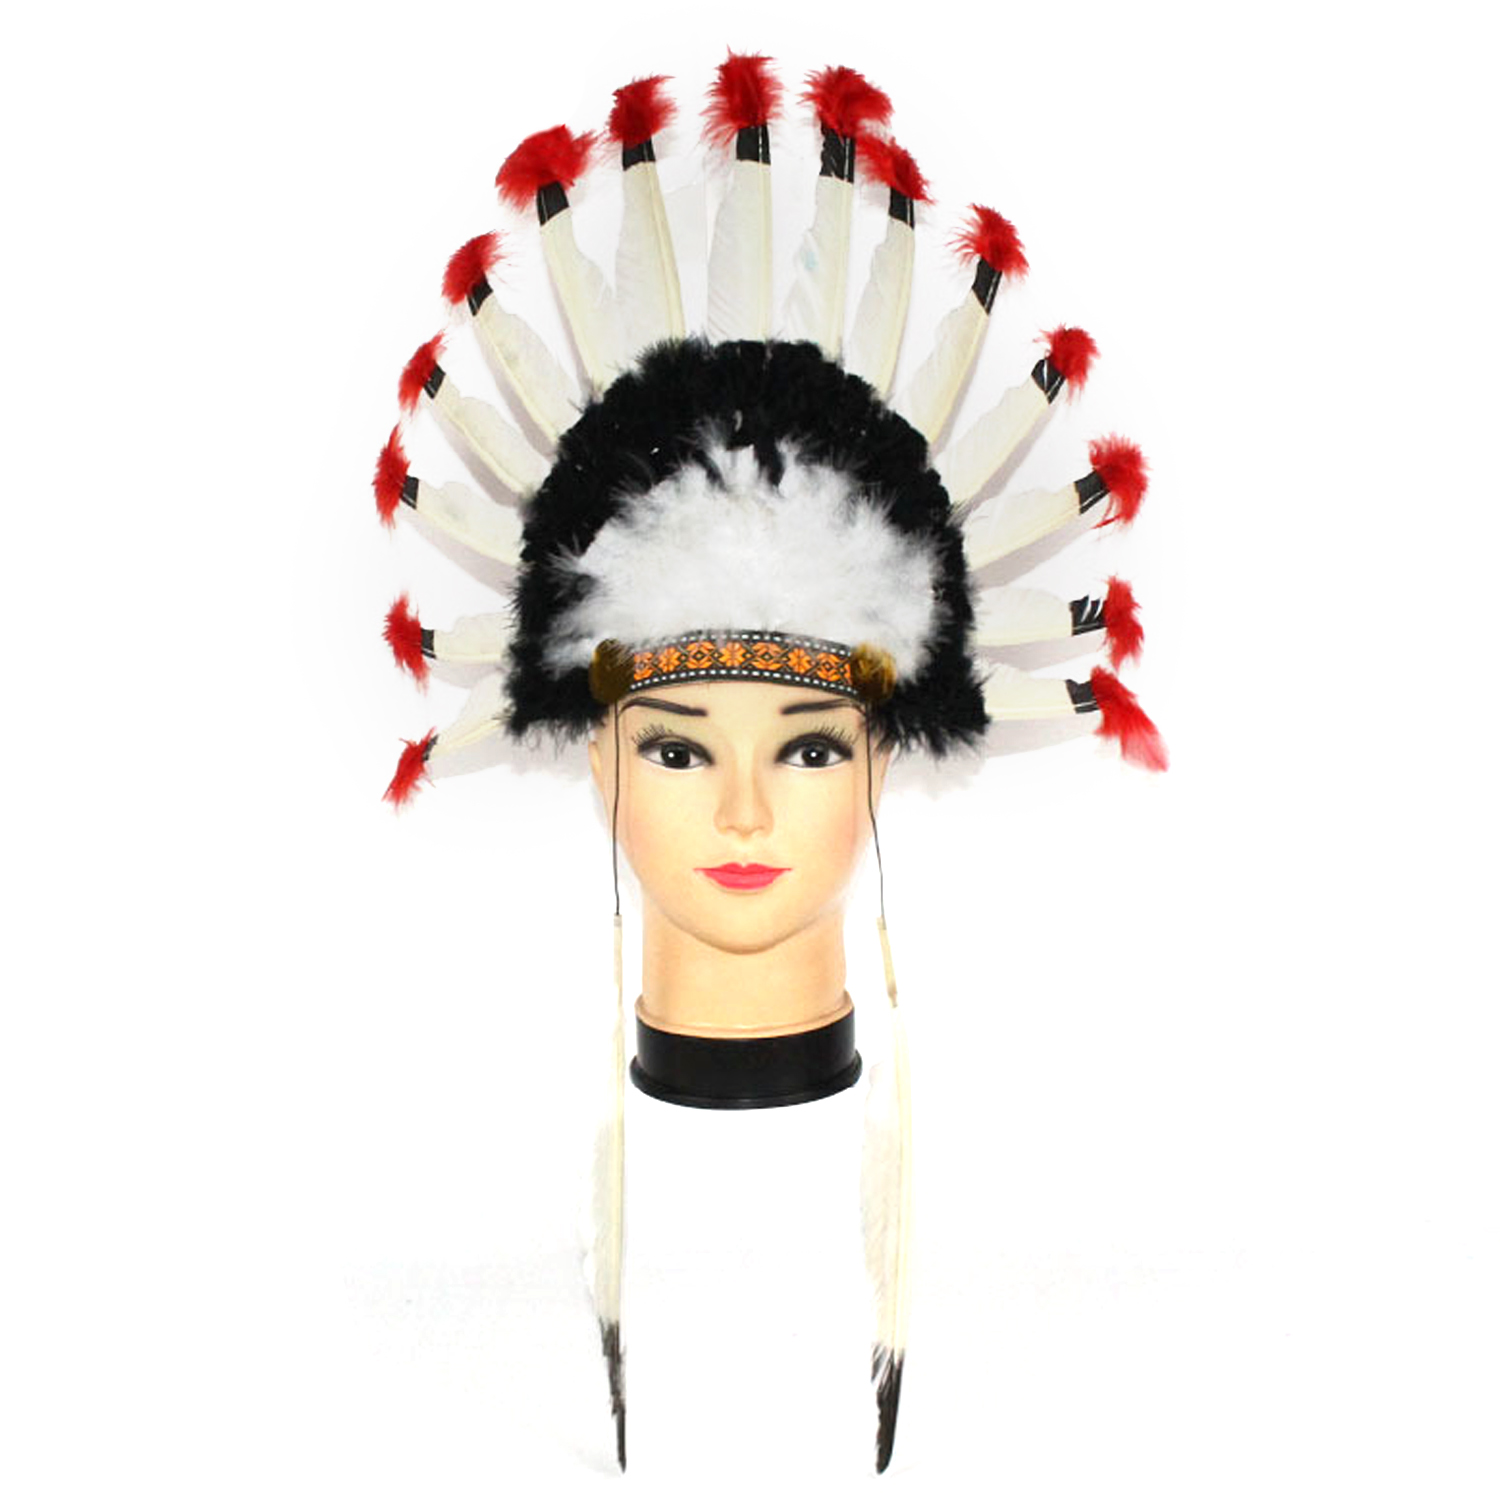 Indian Style Feather Headband Headpiece Headdress For Kids Adults Thanksgiving Masquerade Cosplay Party Costume